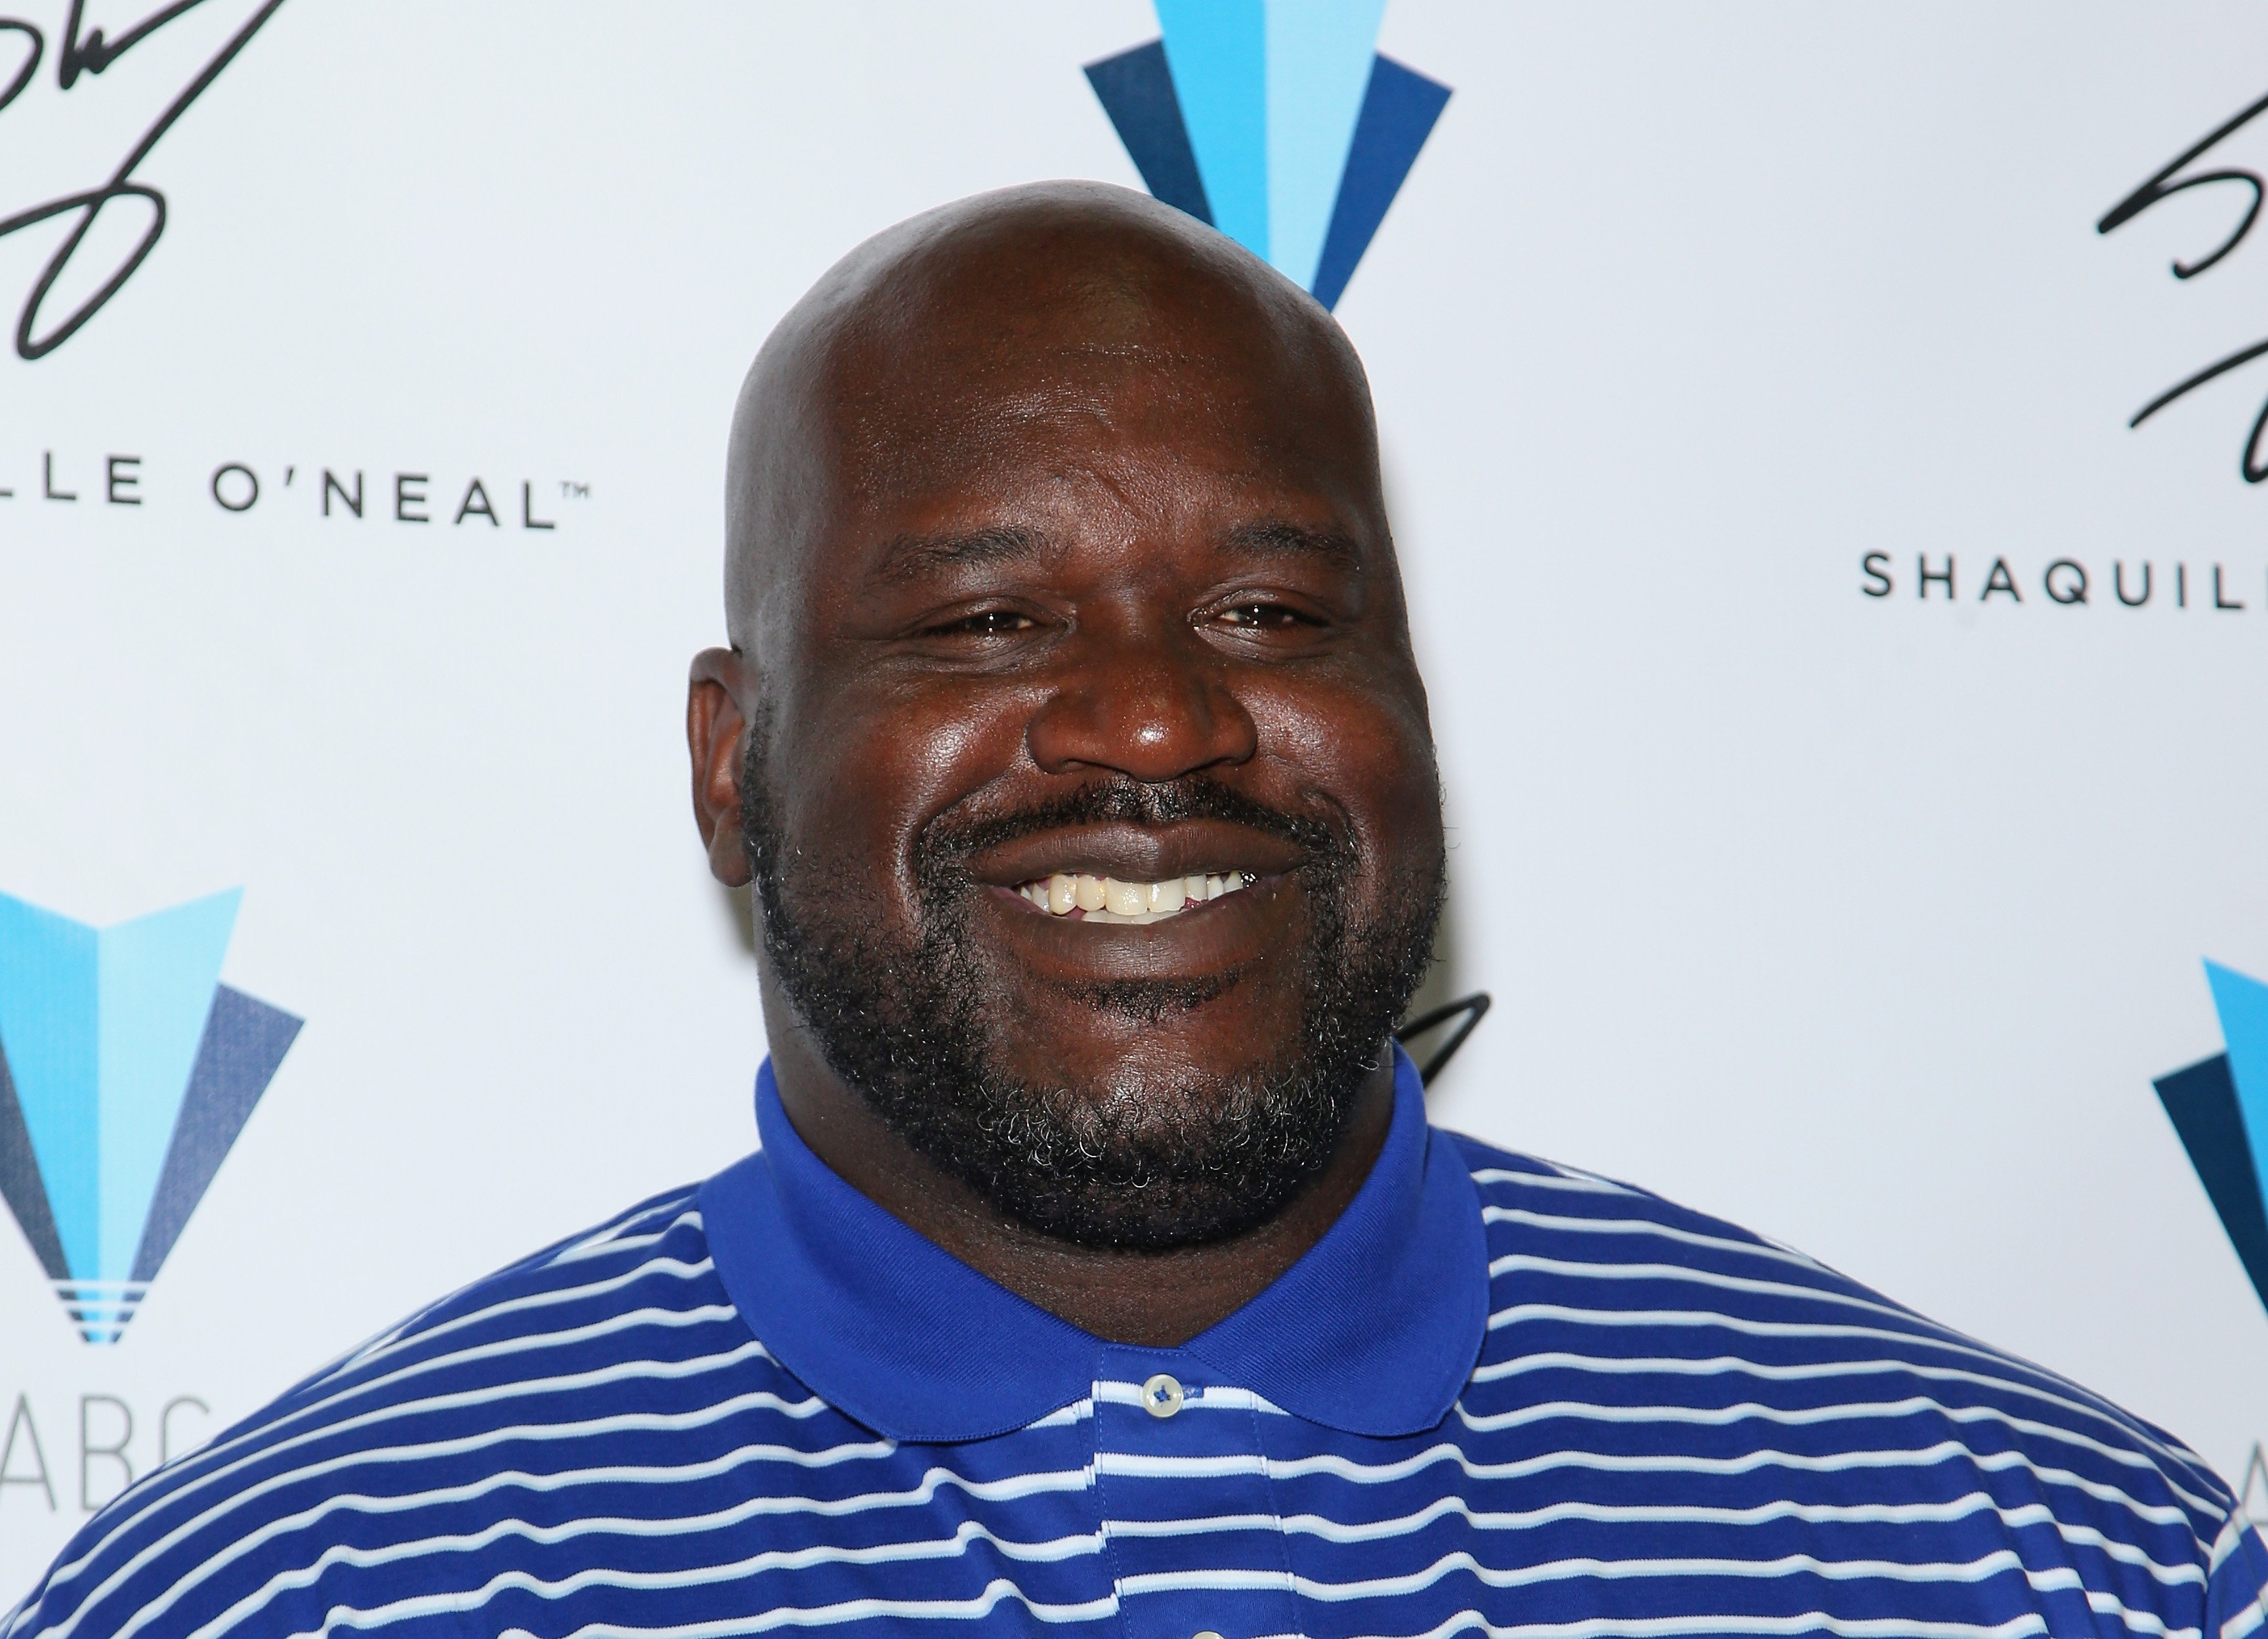 Shaquille O'Neal at the Licensing Expo 2016 at the Mandalay Bay Convention Center on June 21, 2016.   Photo: Getty Images